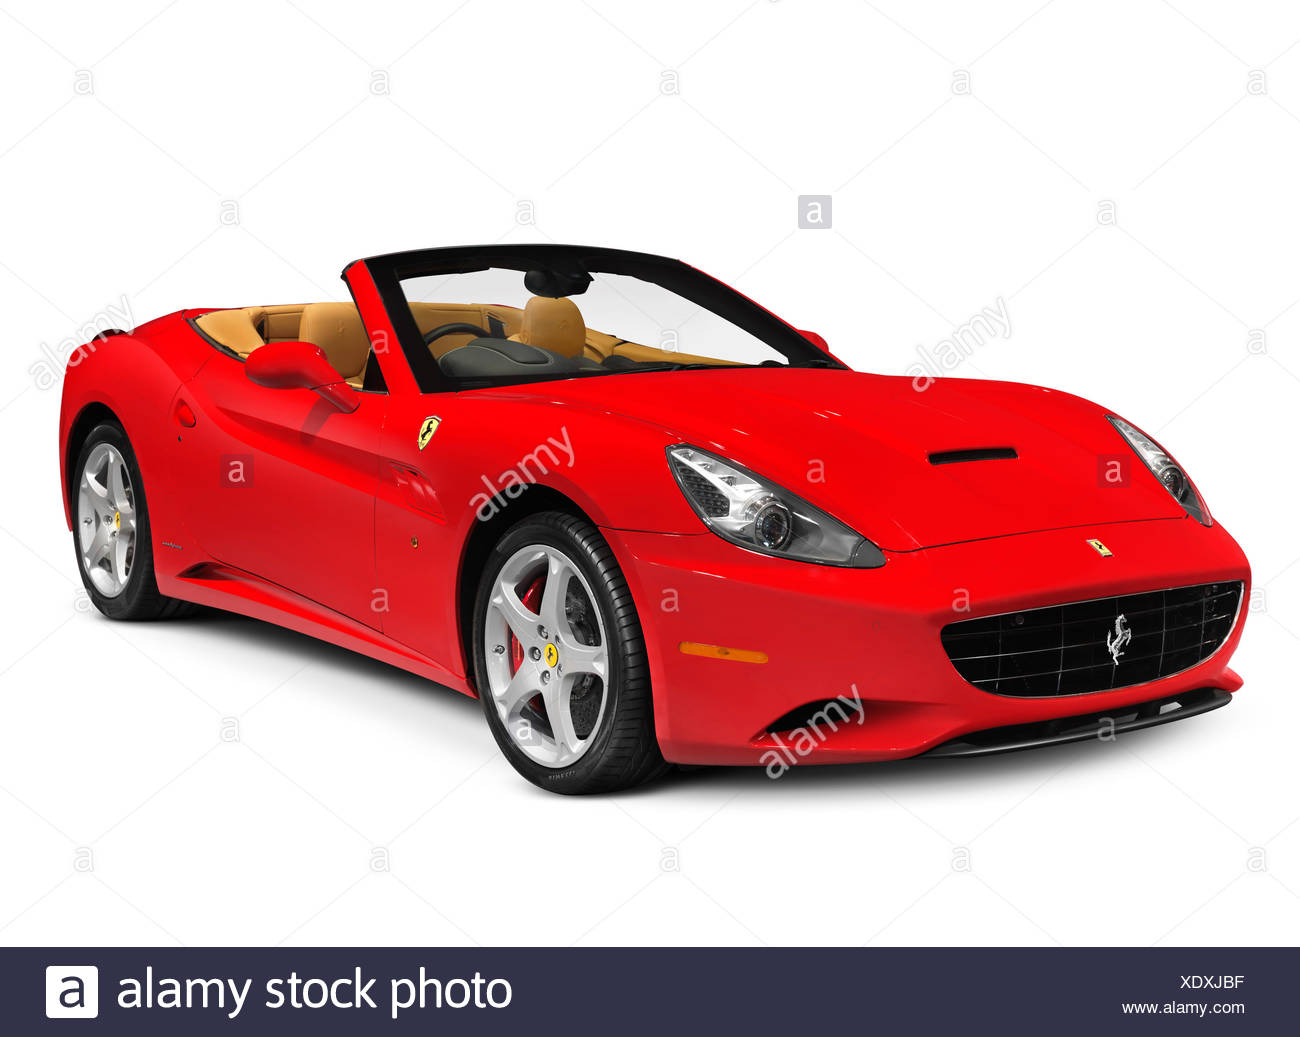 Red Ferrari California Grand Touring Hard Top Convertible Sports Car In Production From 2008